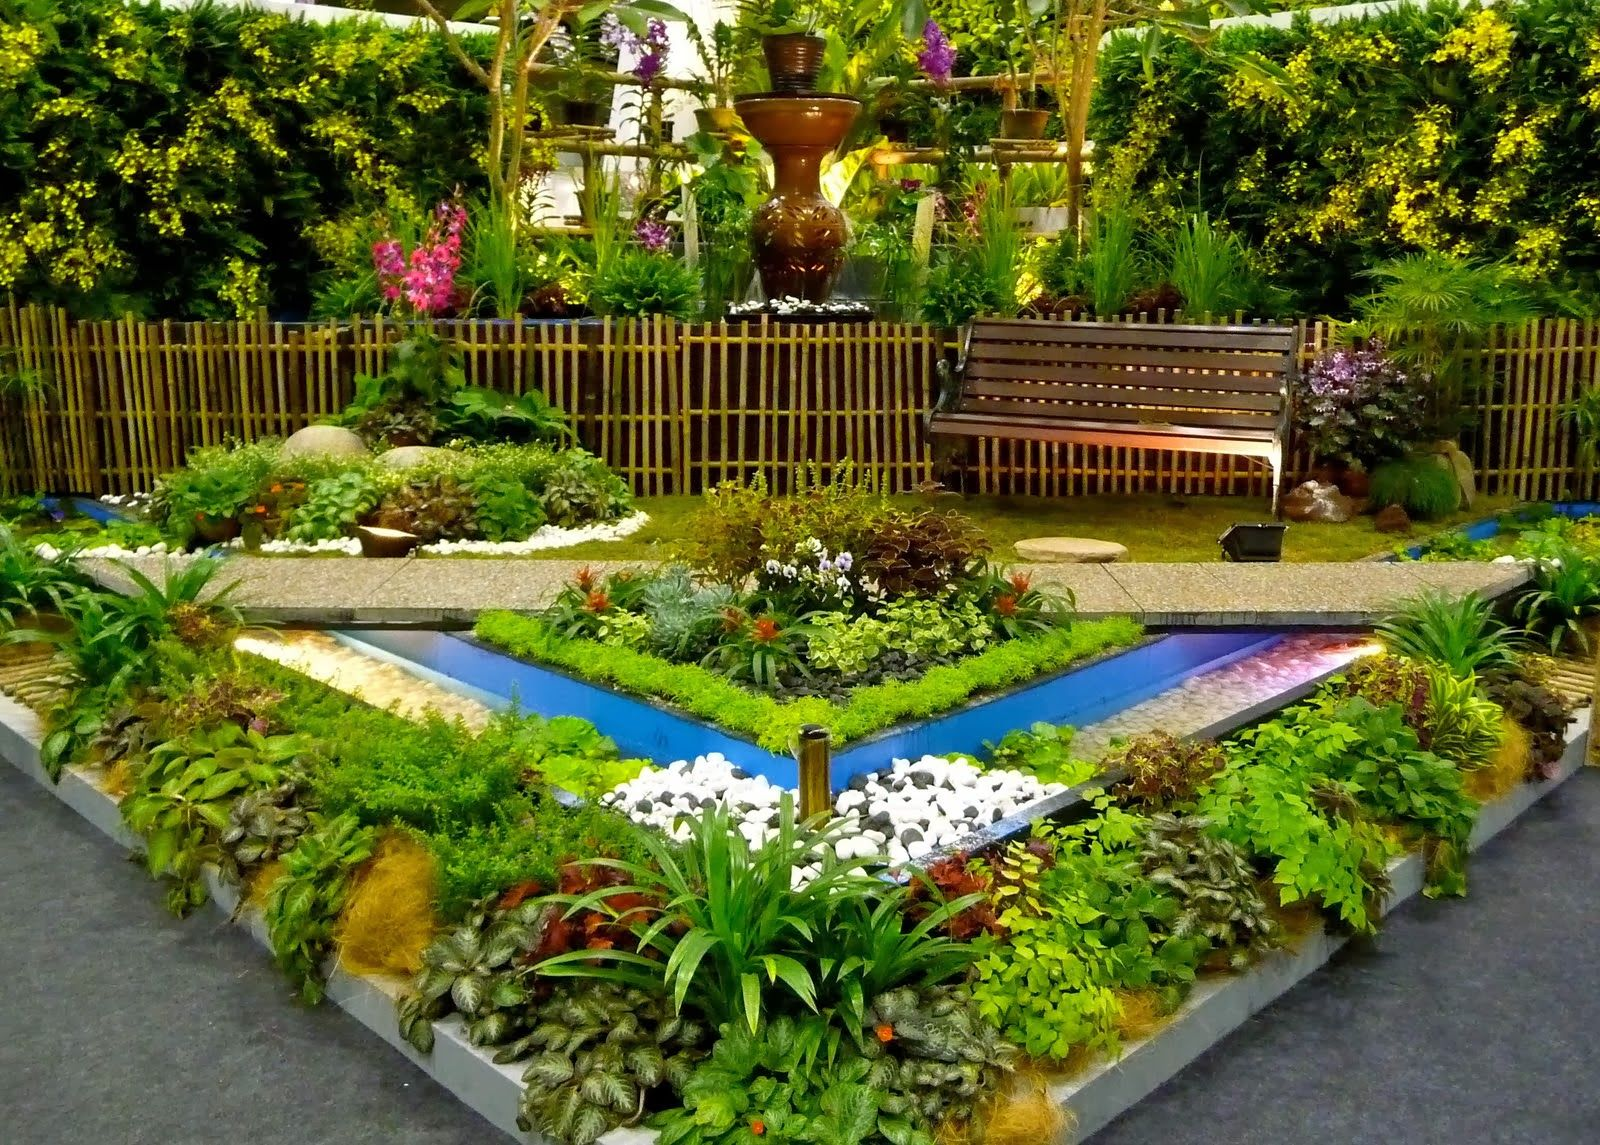 Cool Info On Small Flower Garden Design For Small Space With Wooden Bench Part 50